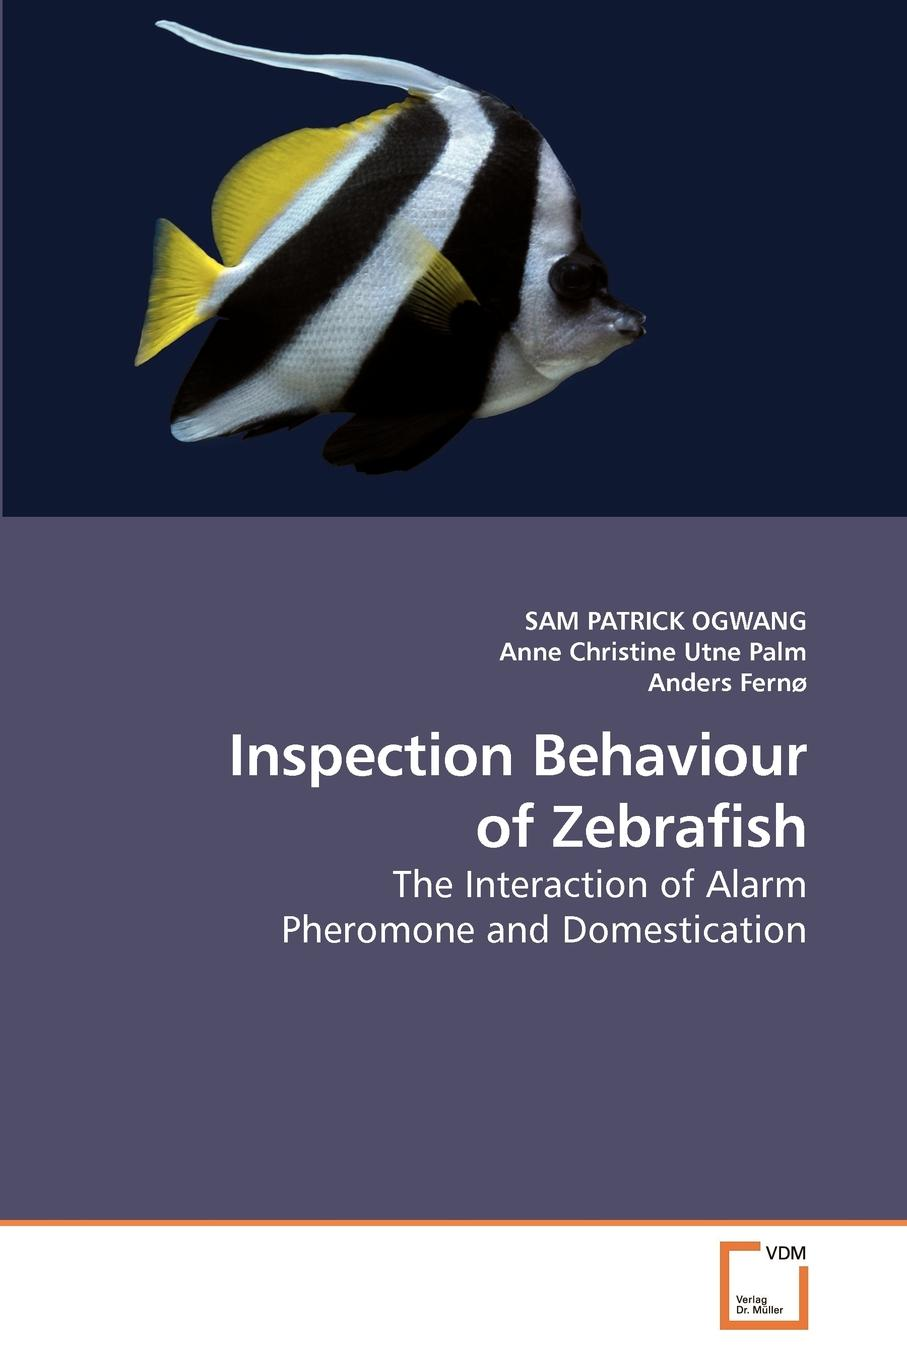 SAM PATRICK OGWANG, Anne Christine, Anders Fernø Inspection Behaviour of Zebrafish dynamics and mechanics of zebrafish embryonic tissues